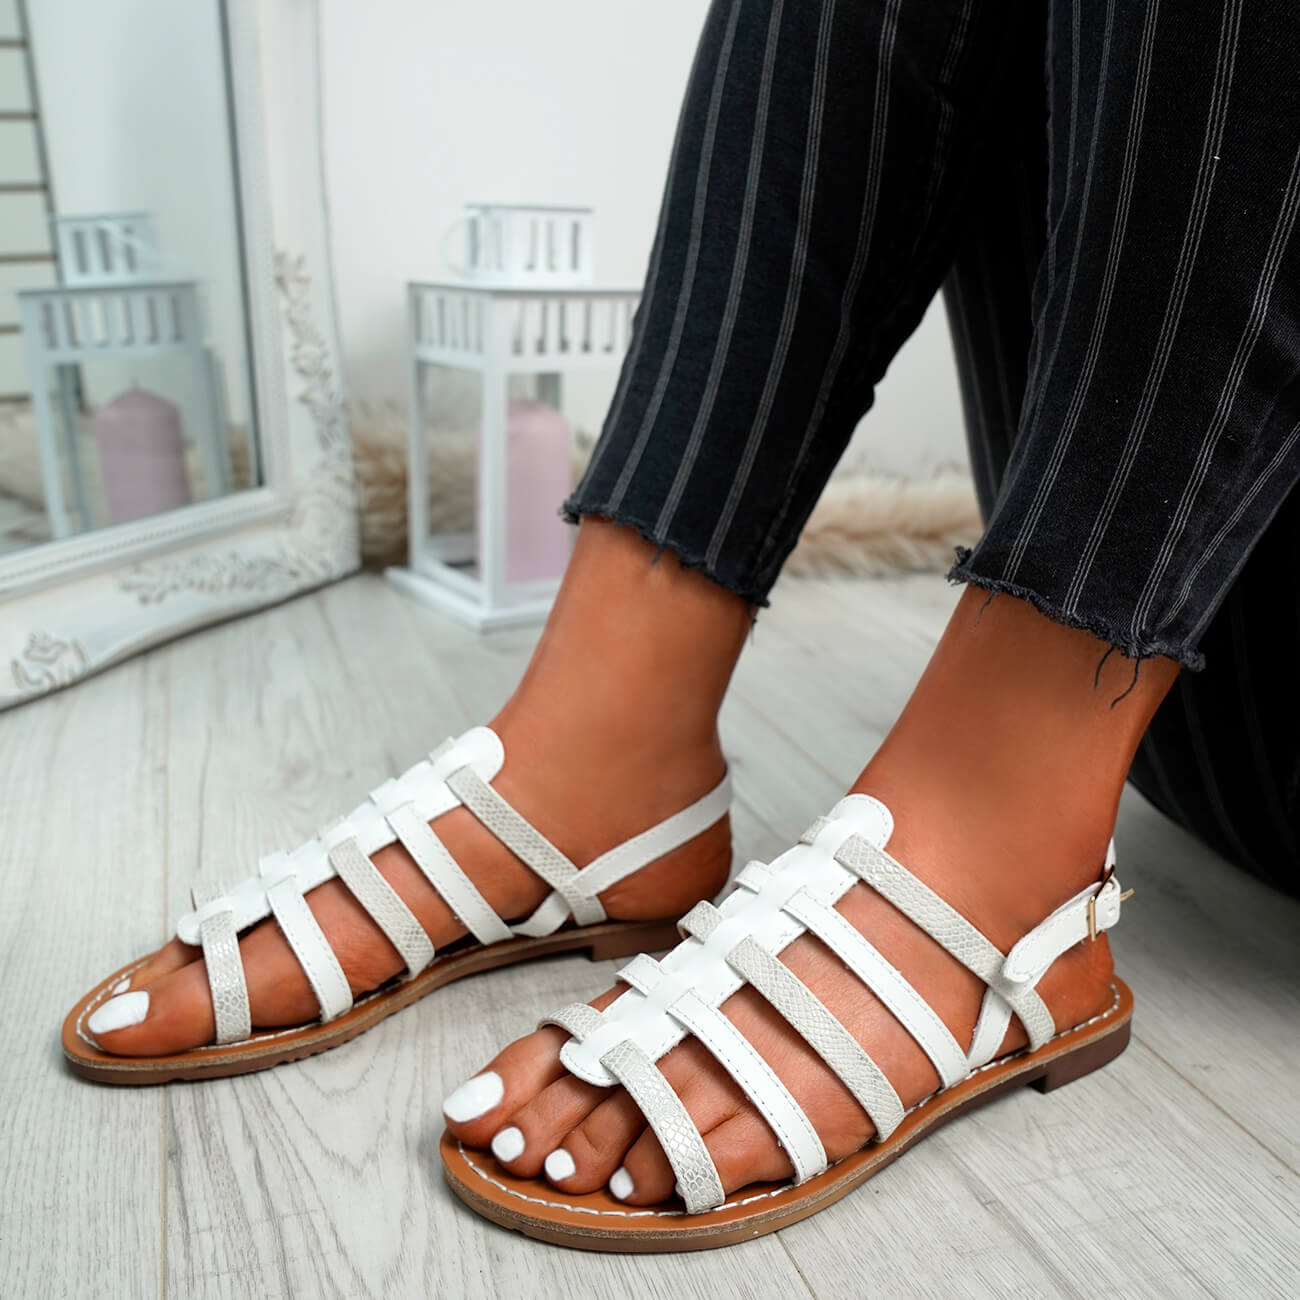 WOMENS-LADIES-BUCKLE-STRAP-FLAT-SUMMER-SANDALS-CASUAL-HOLIDAY-COMFY-SHOES-SIZE thumbnail 34